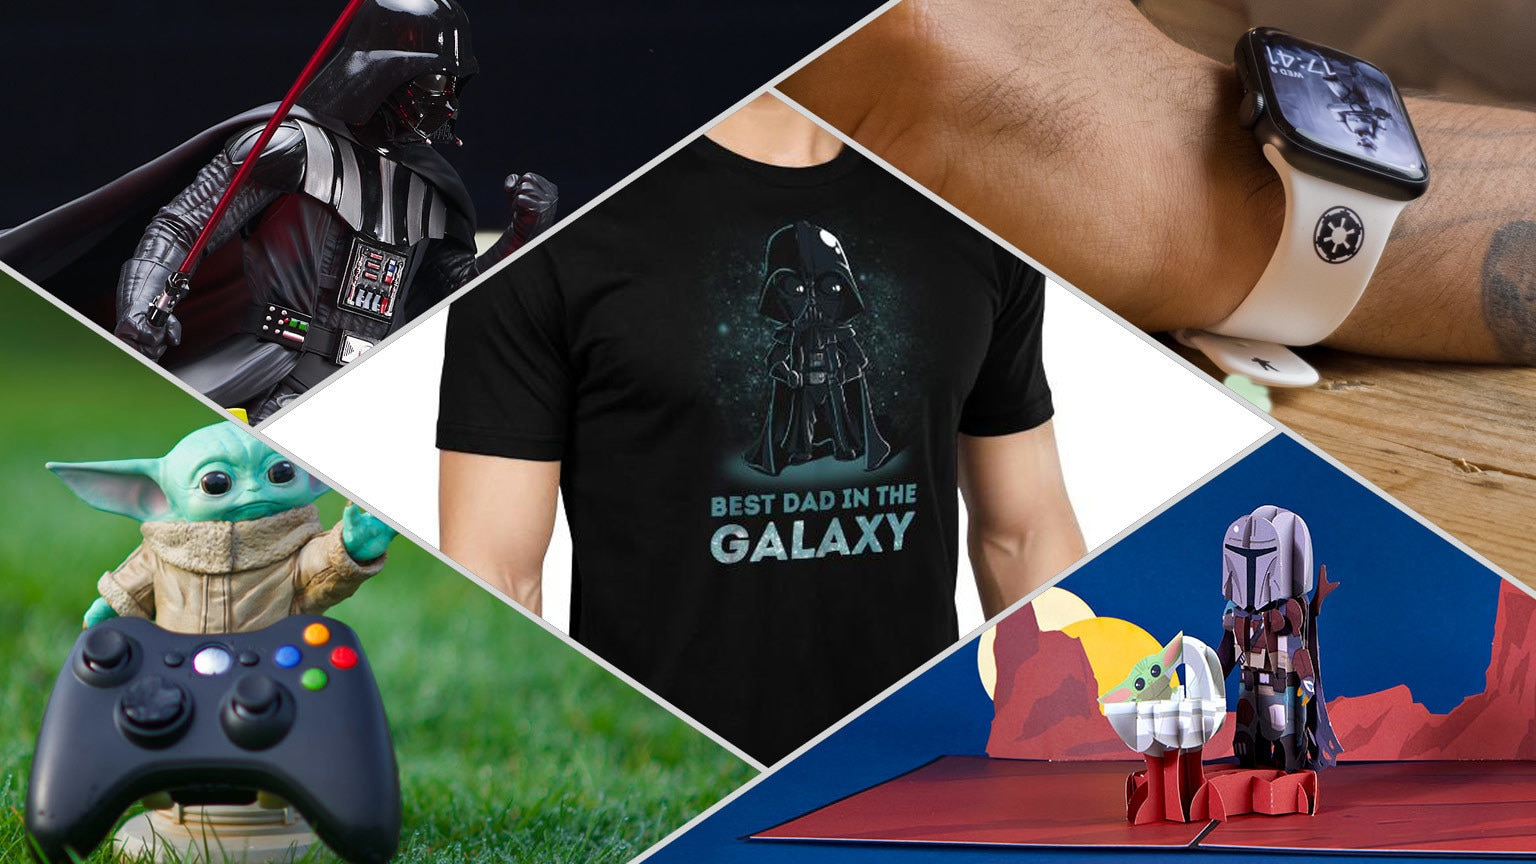 UPDATED: Star Wars Father's Day Gift Guide 2021